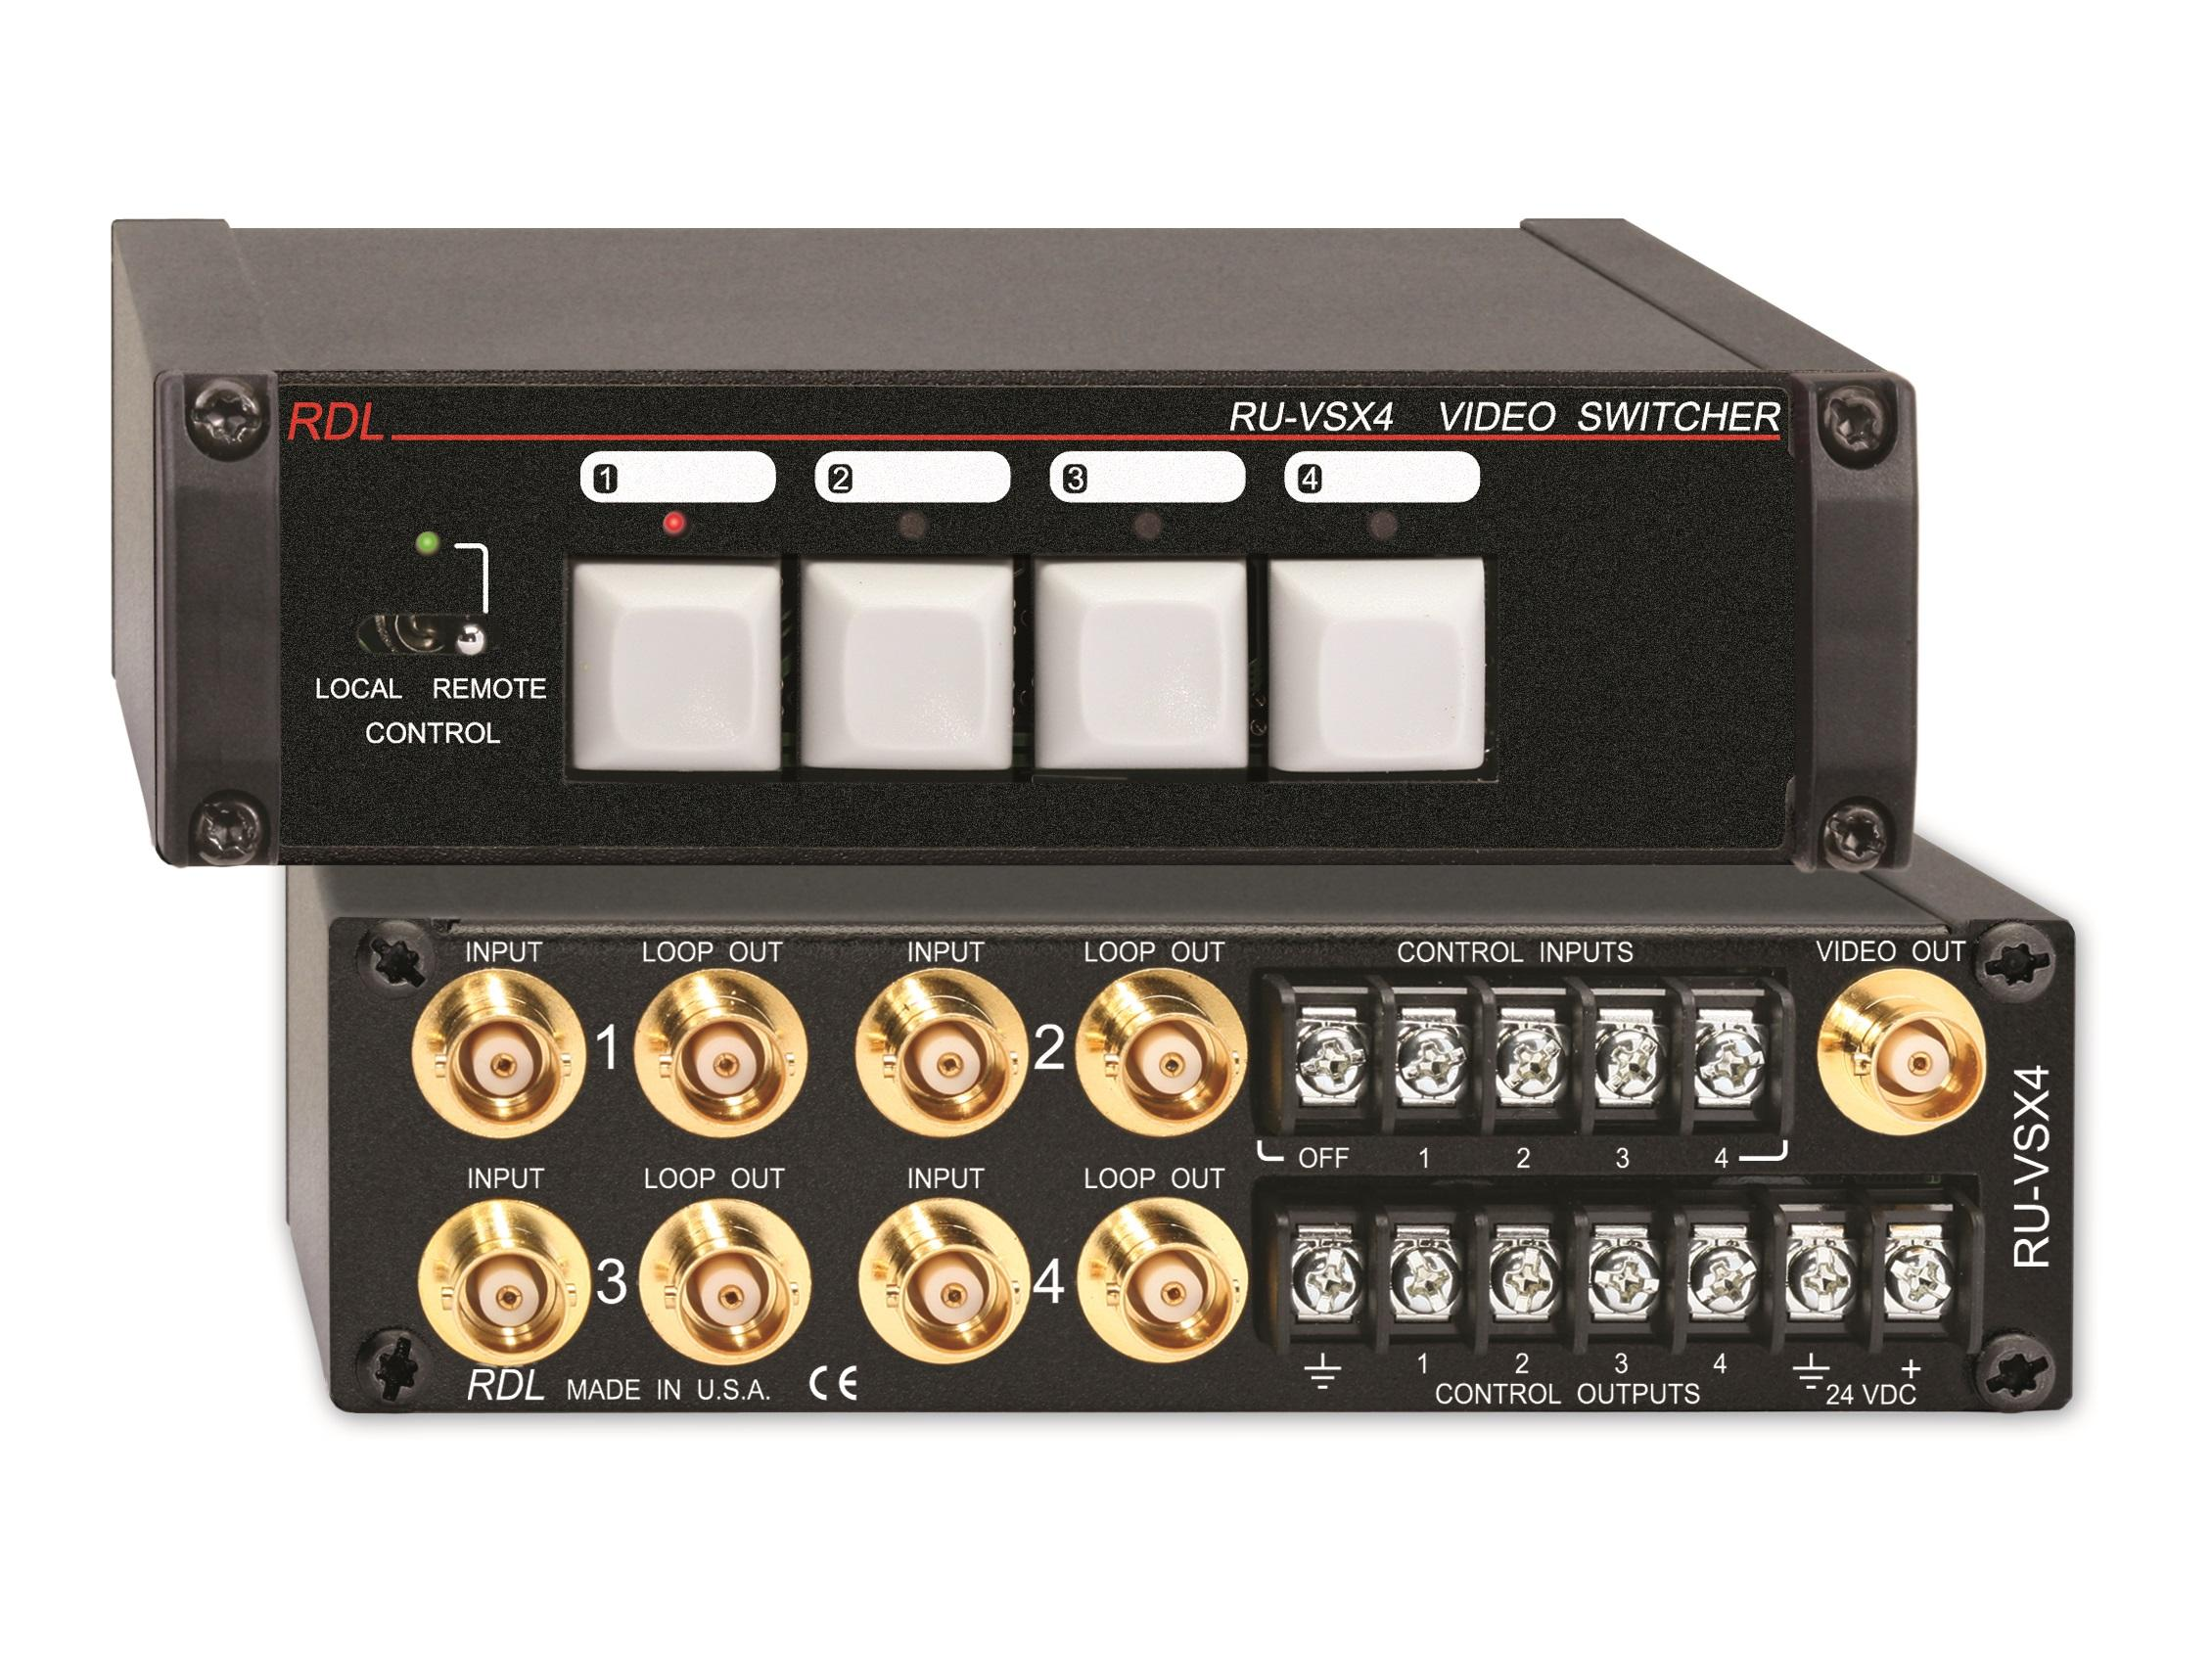 RU-VSX4 4x1 BNC Video Switcher by RDL